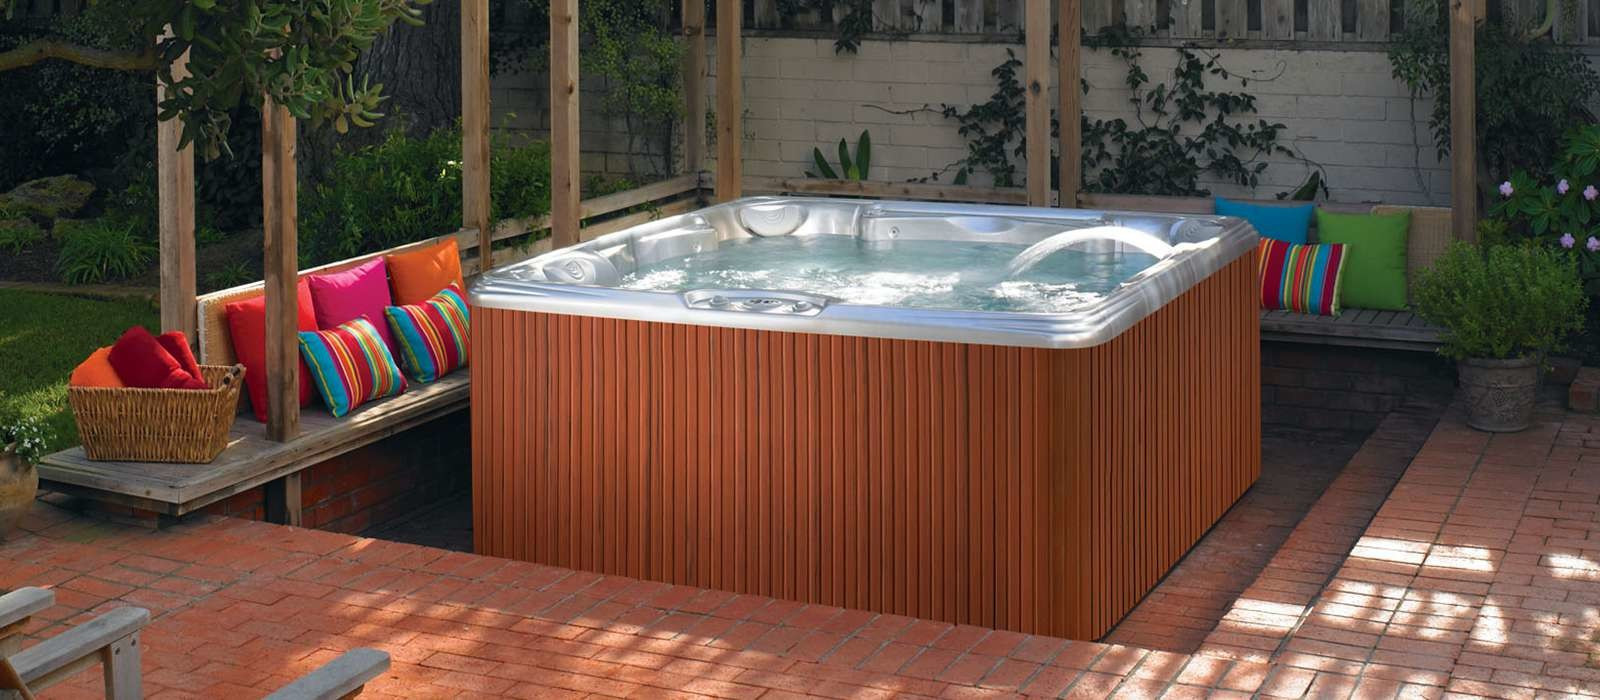 Backyard Hot Tub Ideas Installation Landscaping intended for 15 Genius Ways How to Improve Backyard Hot Tub Ideas